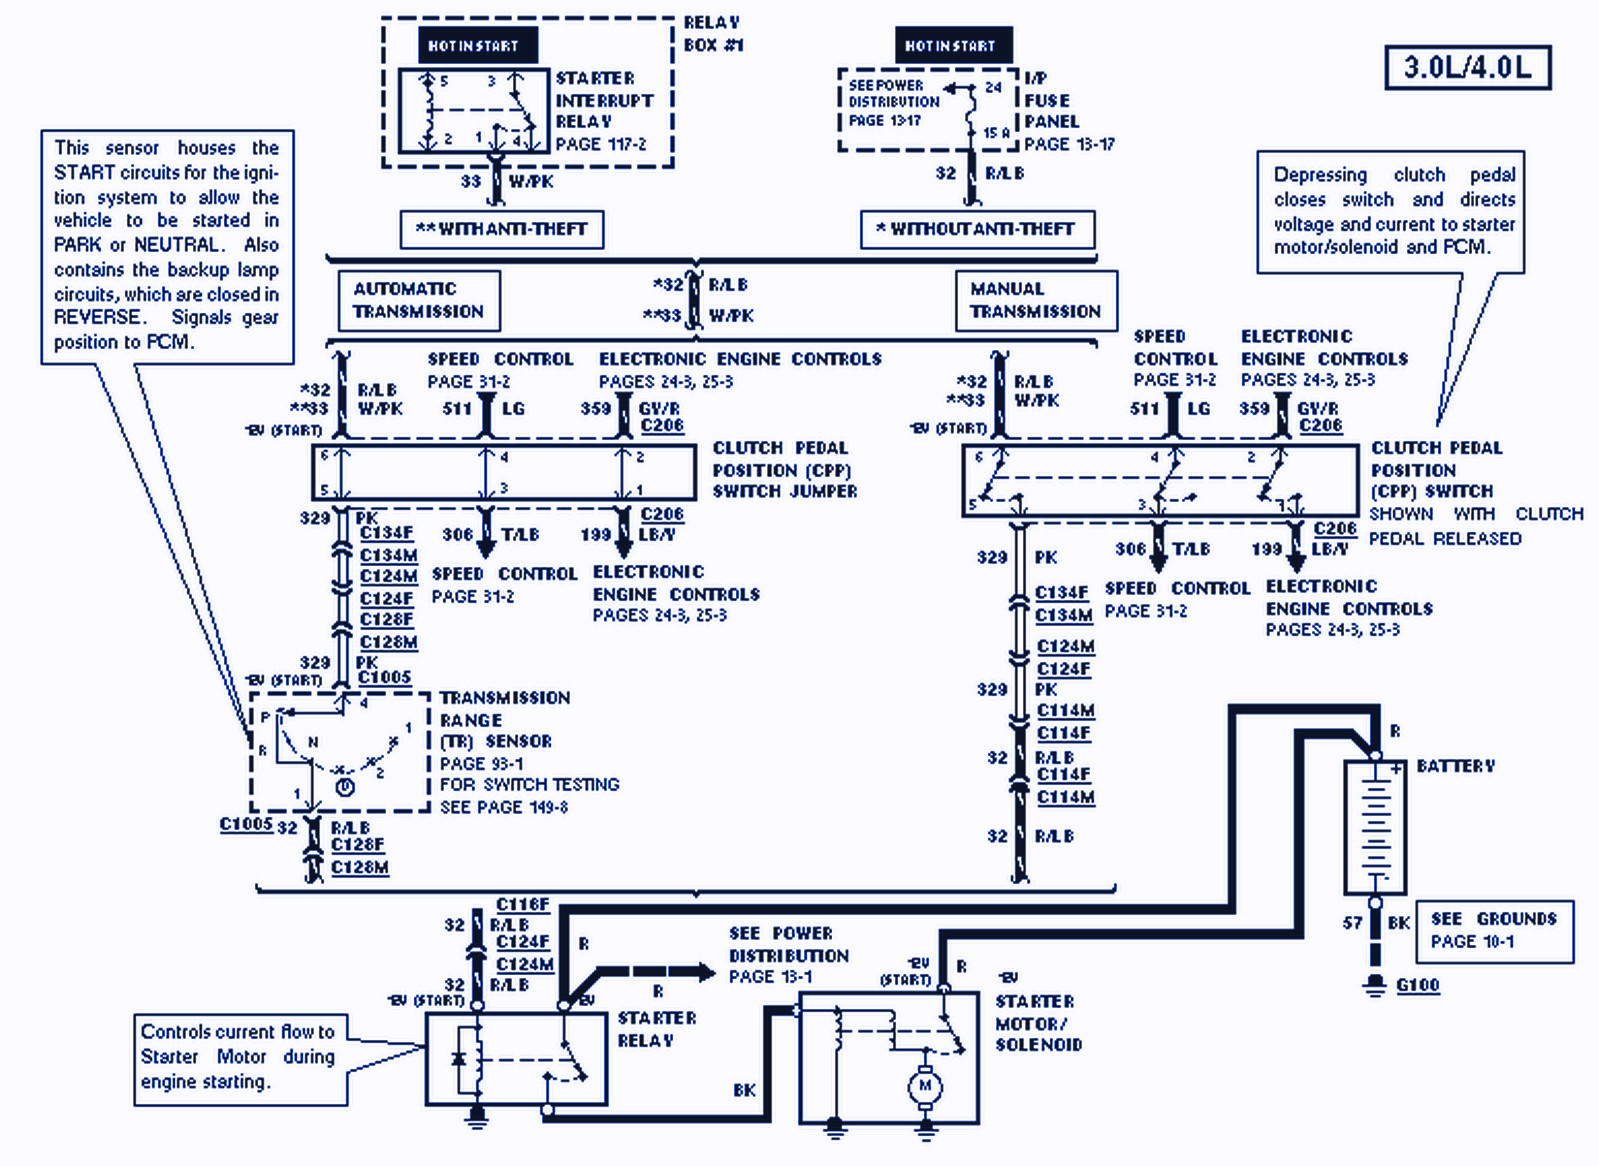 DIAGRAM] 2001 Ford Ranger Xlt Wiring Diagram FULL Version HD Quality Wiring  Diagram - MYMOTOGPSPACE.DELI-MULTISERVICES.FRmymotogpspace.deli-multiservices.fr